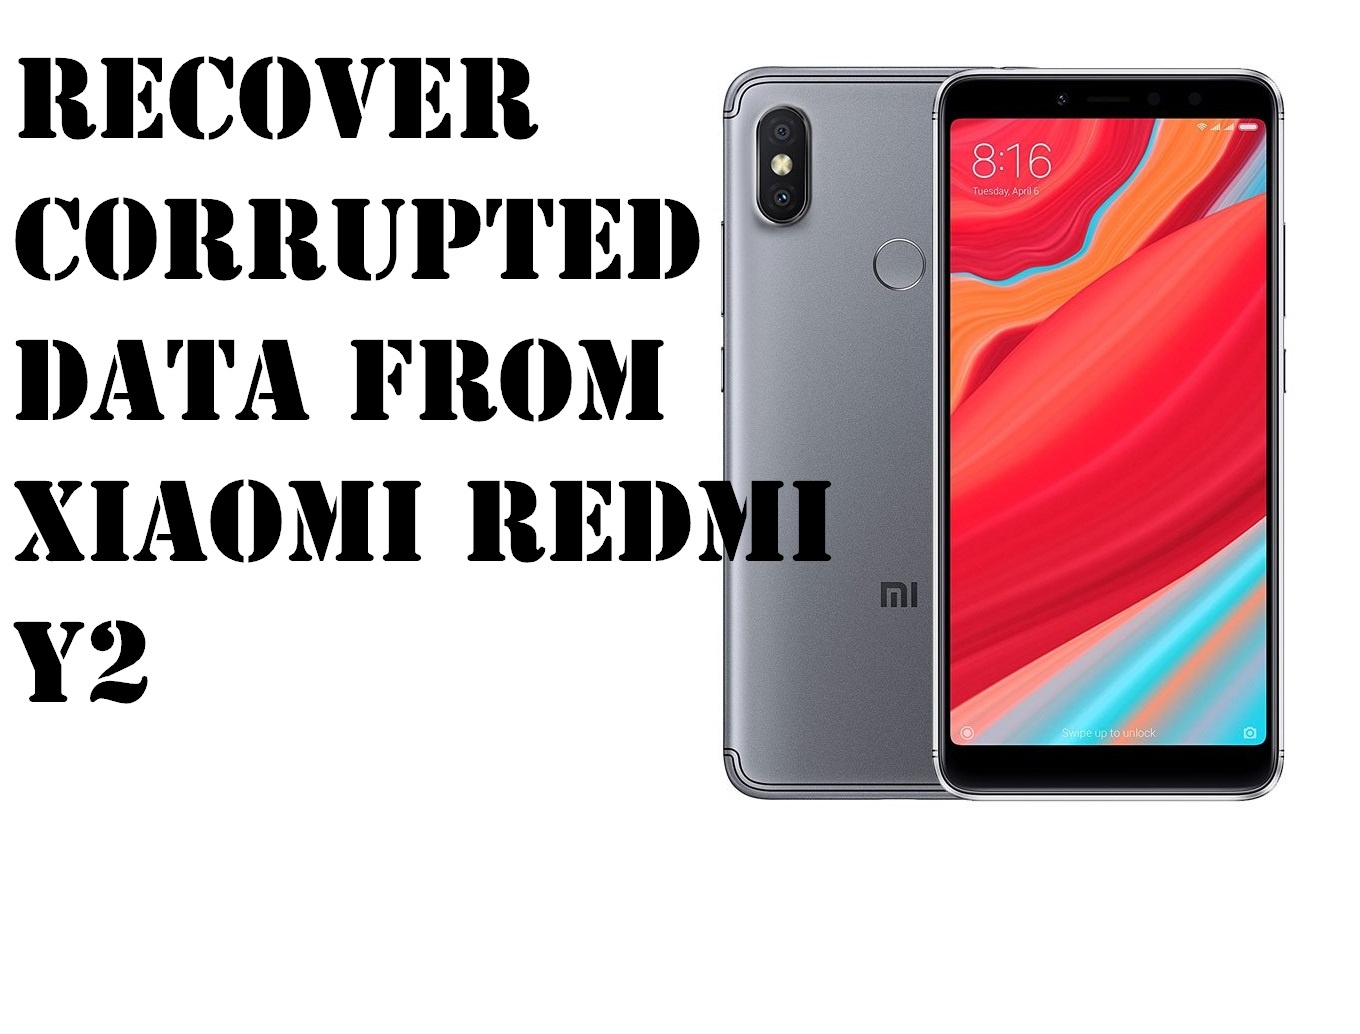 recover corrupted data from Xiaomi Redmi Y2